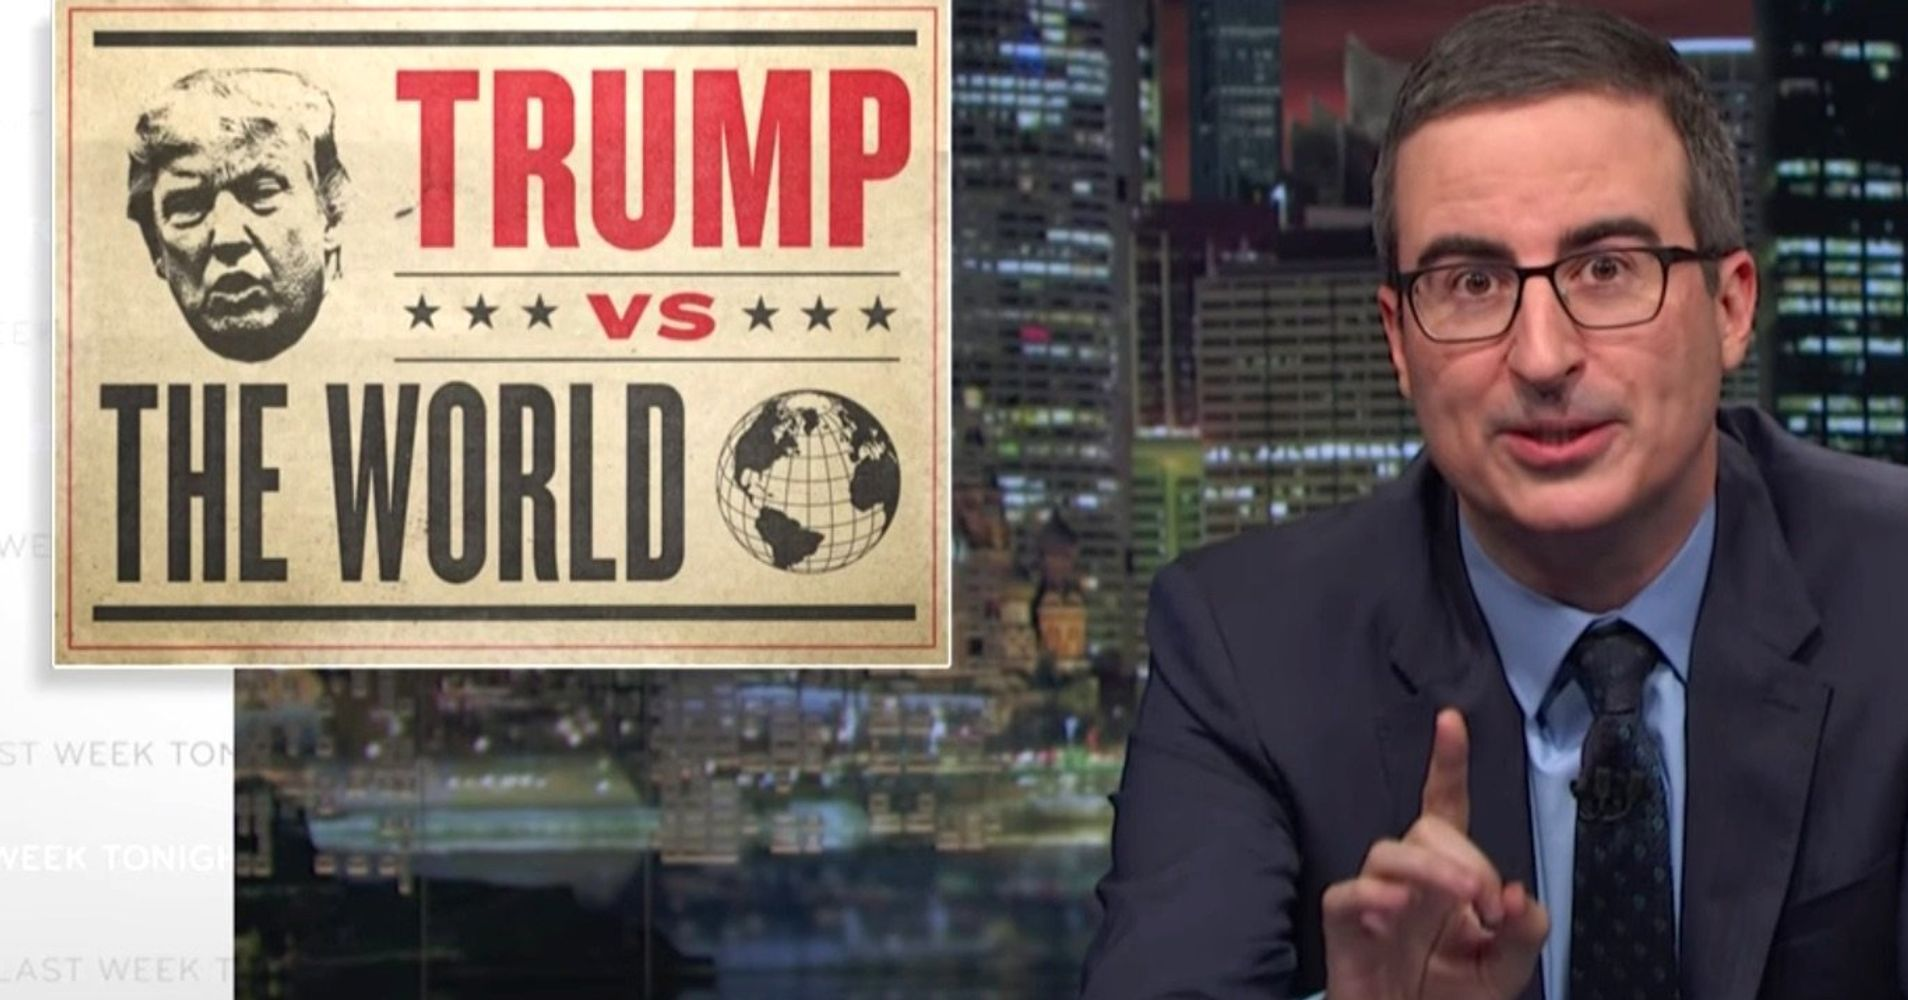 John Oliver Defends U.S. To The World: 'Trump Does Not Reflect America'